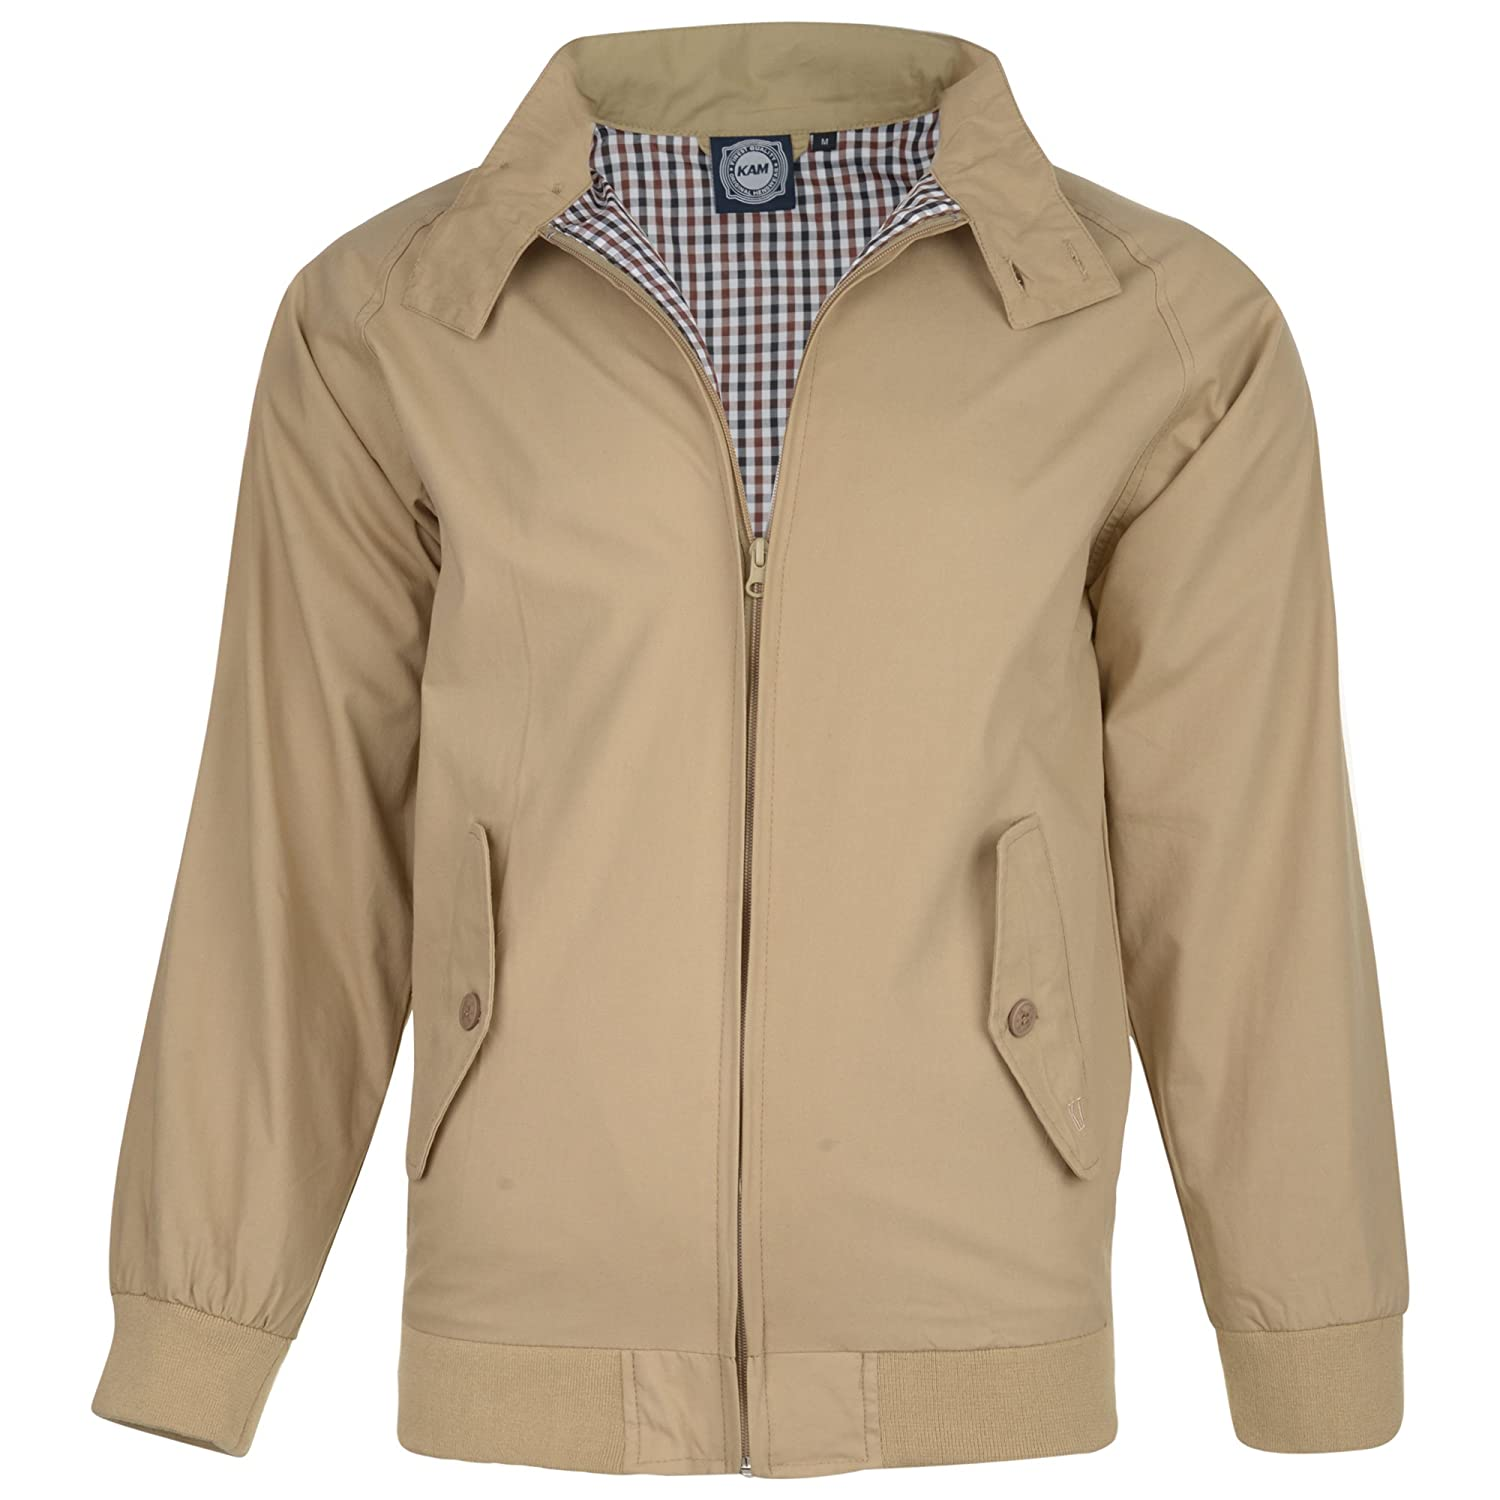 KAM Harrington Jacket - Taupe